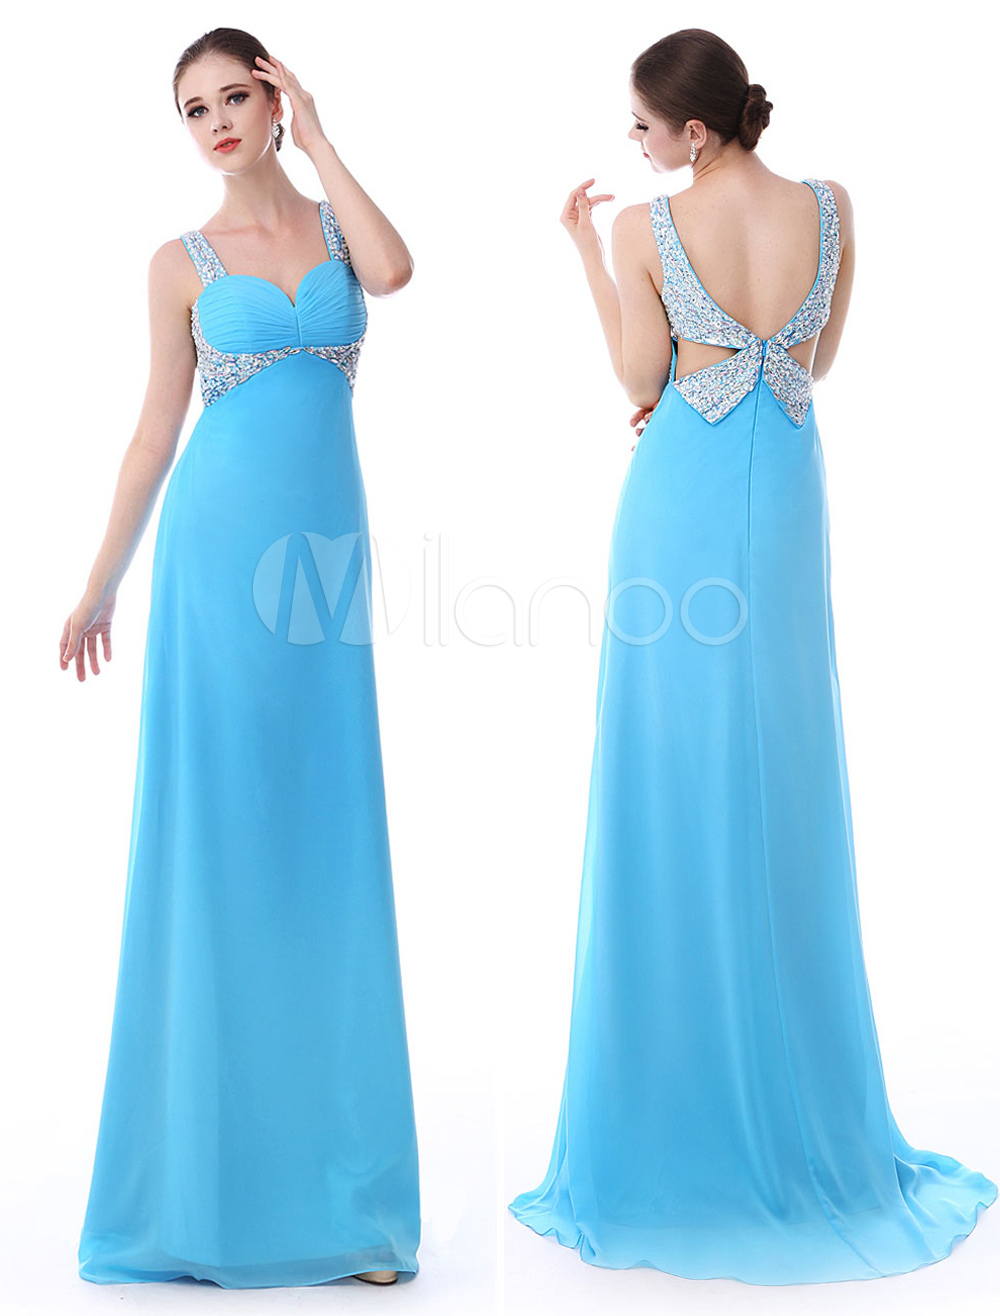 Sheath Blue Chiffon Sweetheart Neck Back Rhinestone Embellishment Prom Dress